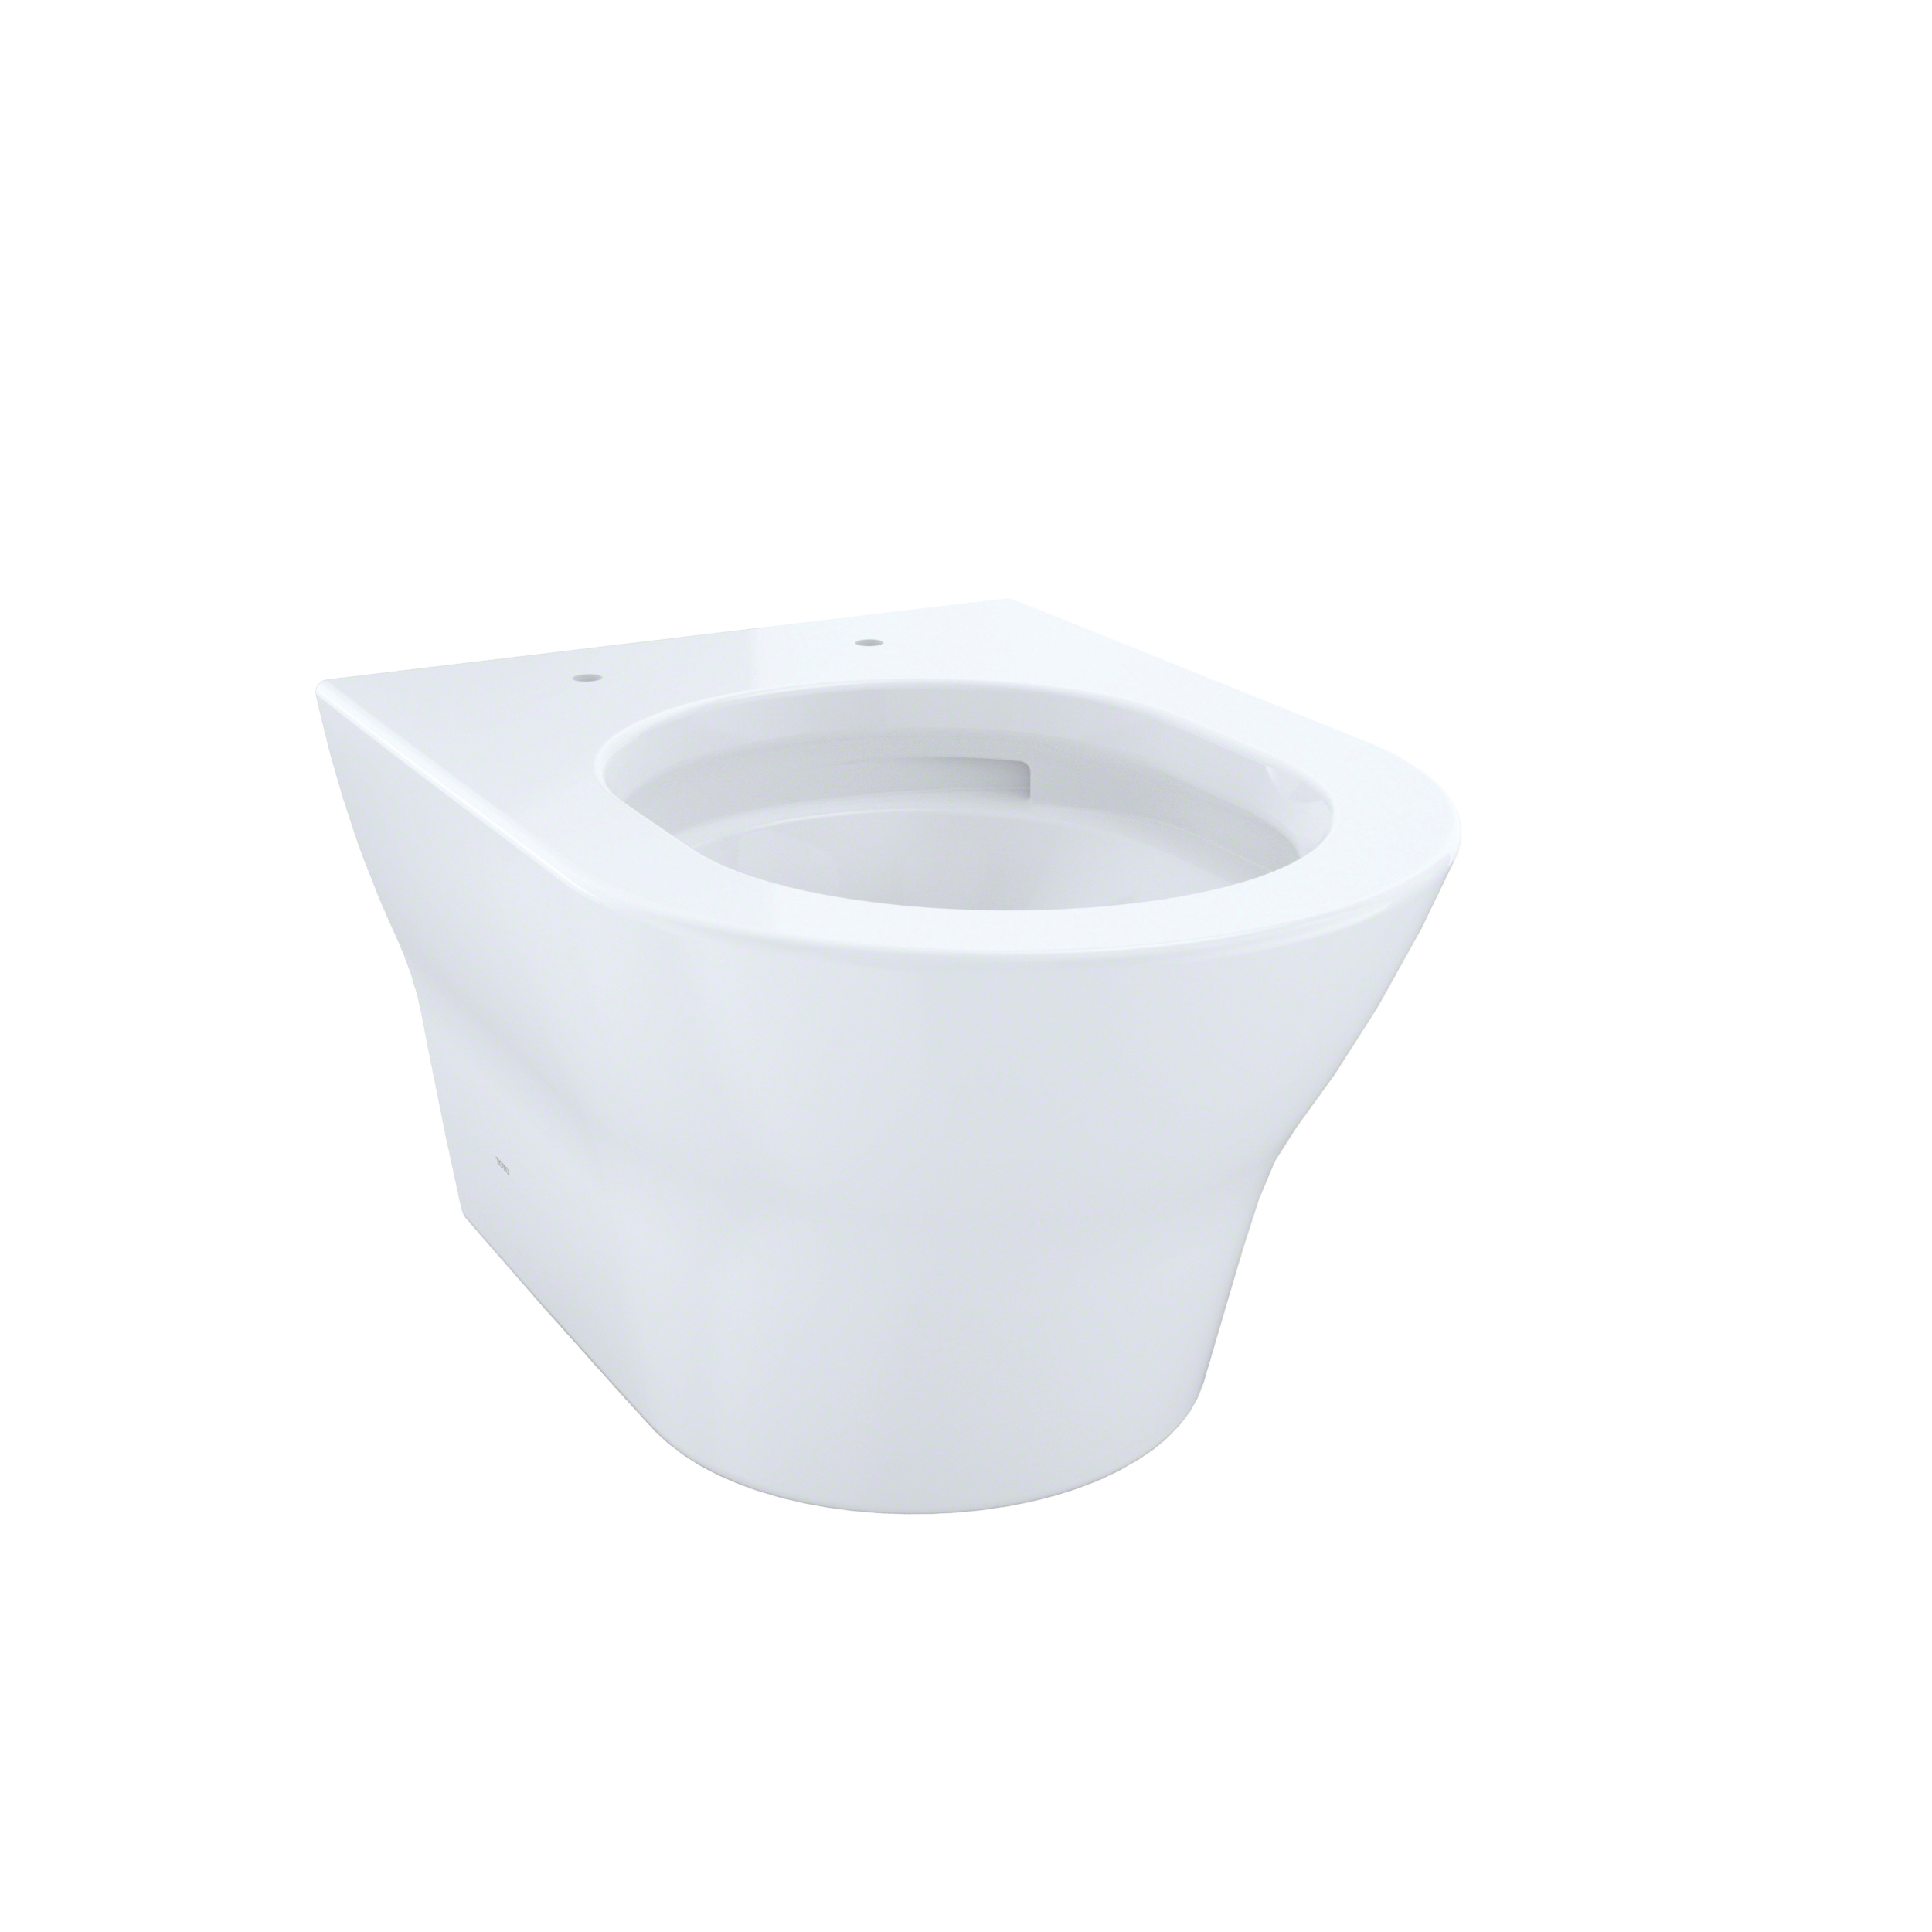 Consolidated Supply Co. | Toto® CT437FG MH Wall-Hung Toilet, D-Shape ...